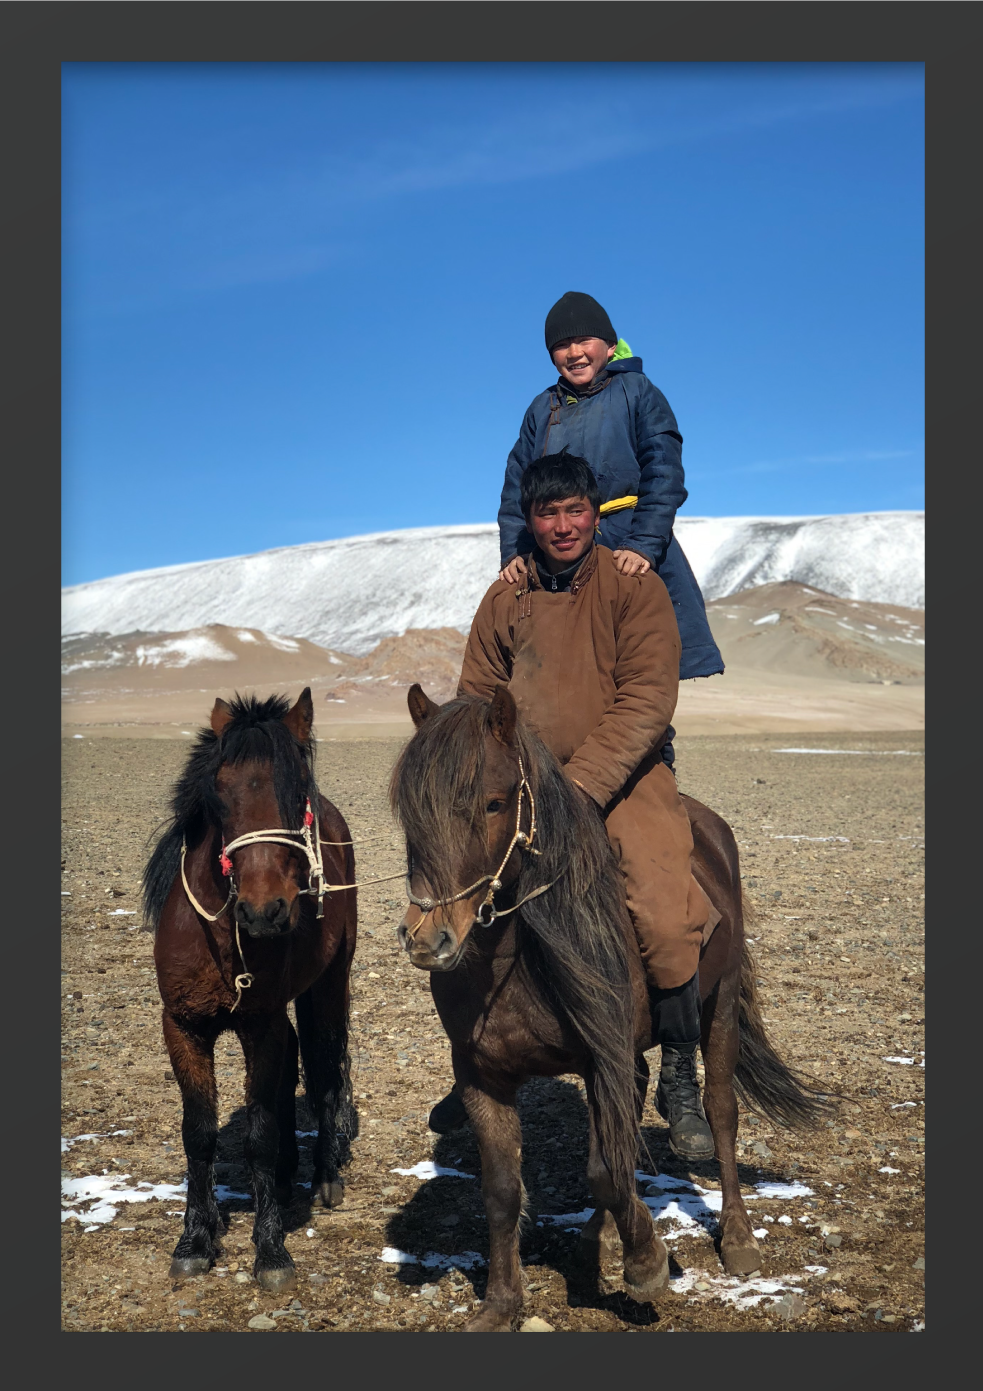 Brothers: Nomads of Mongolia